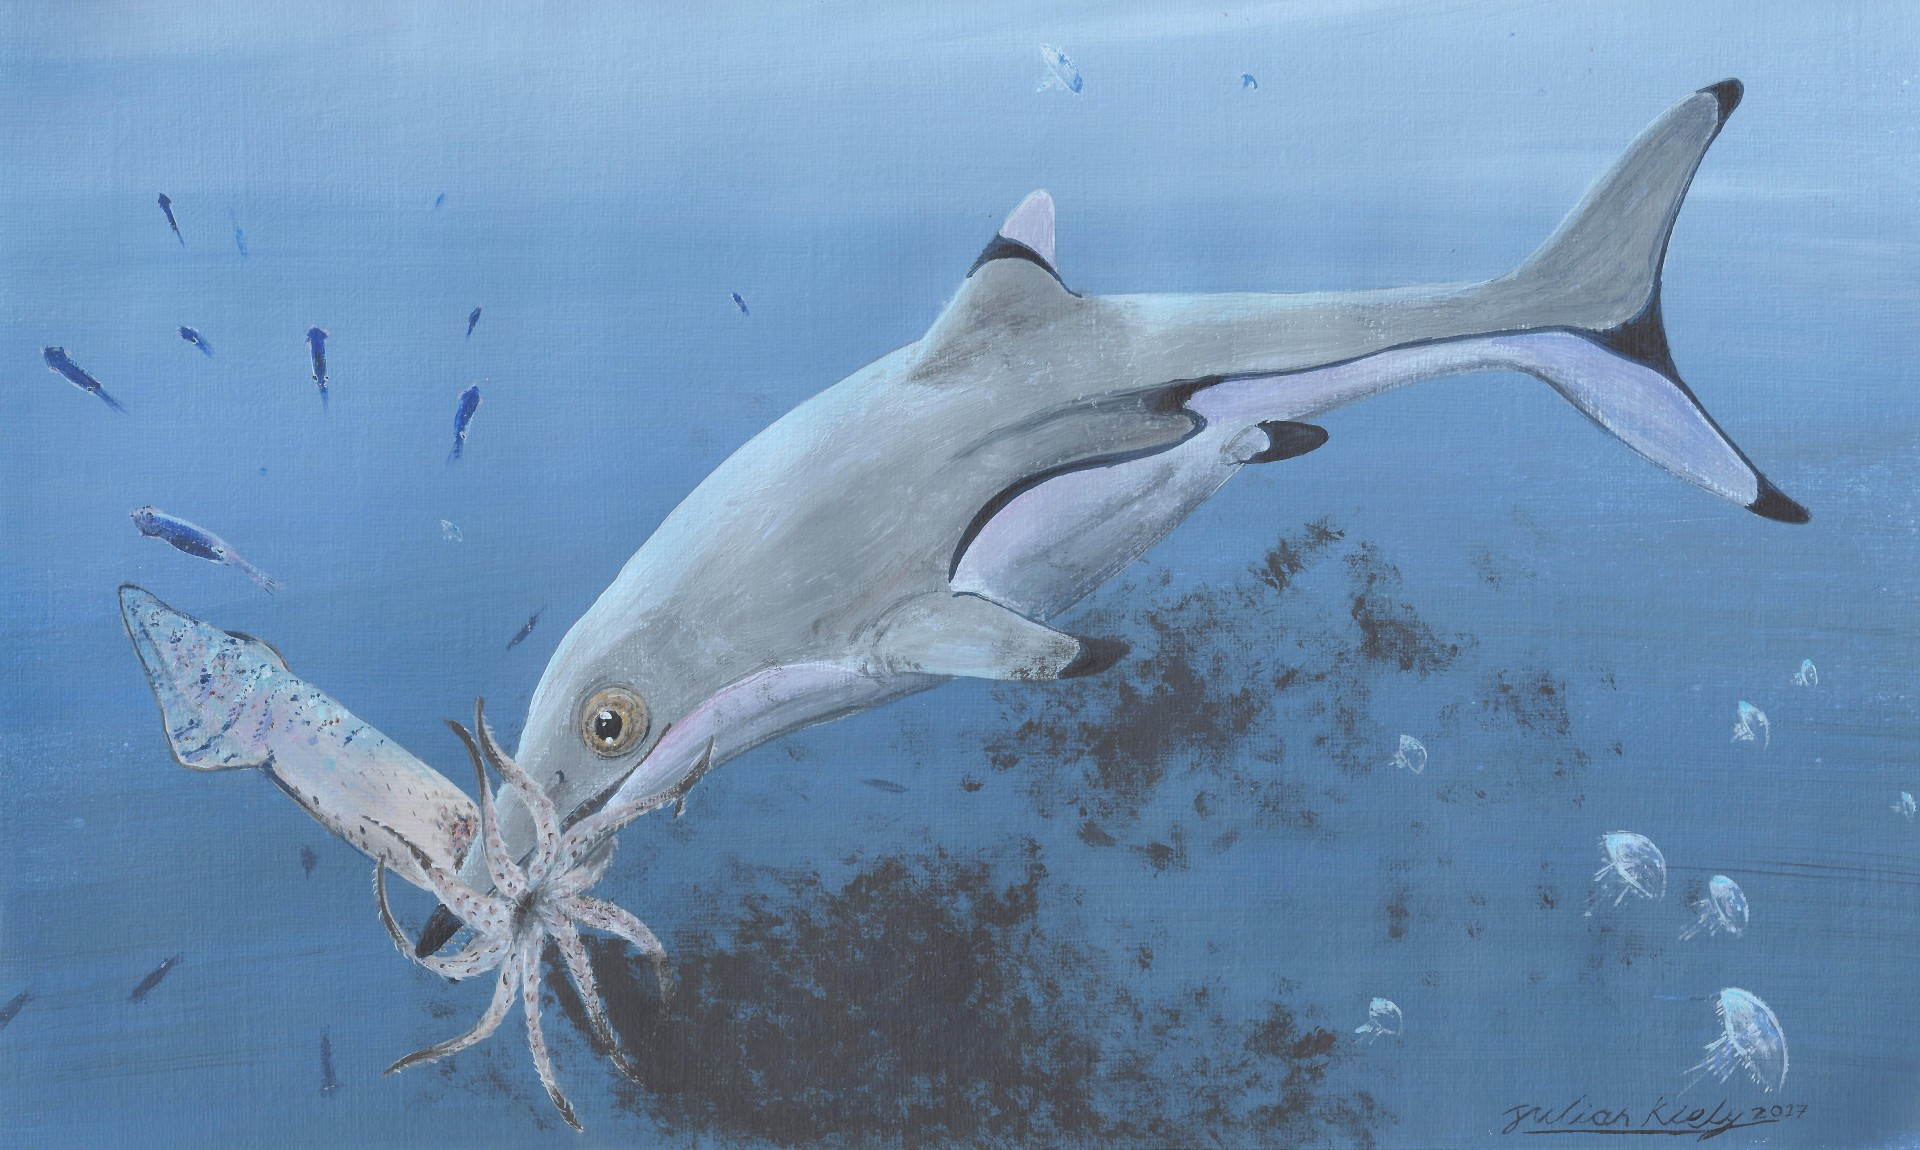 An artist's impression of an ichthyosaur munching on a squid.